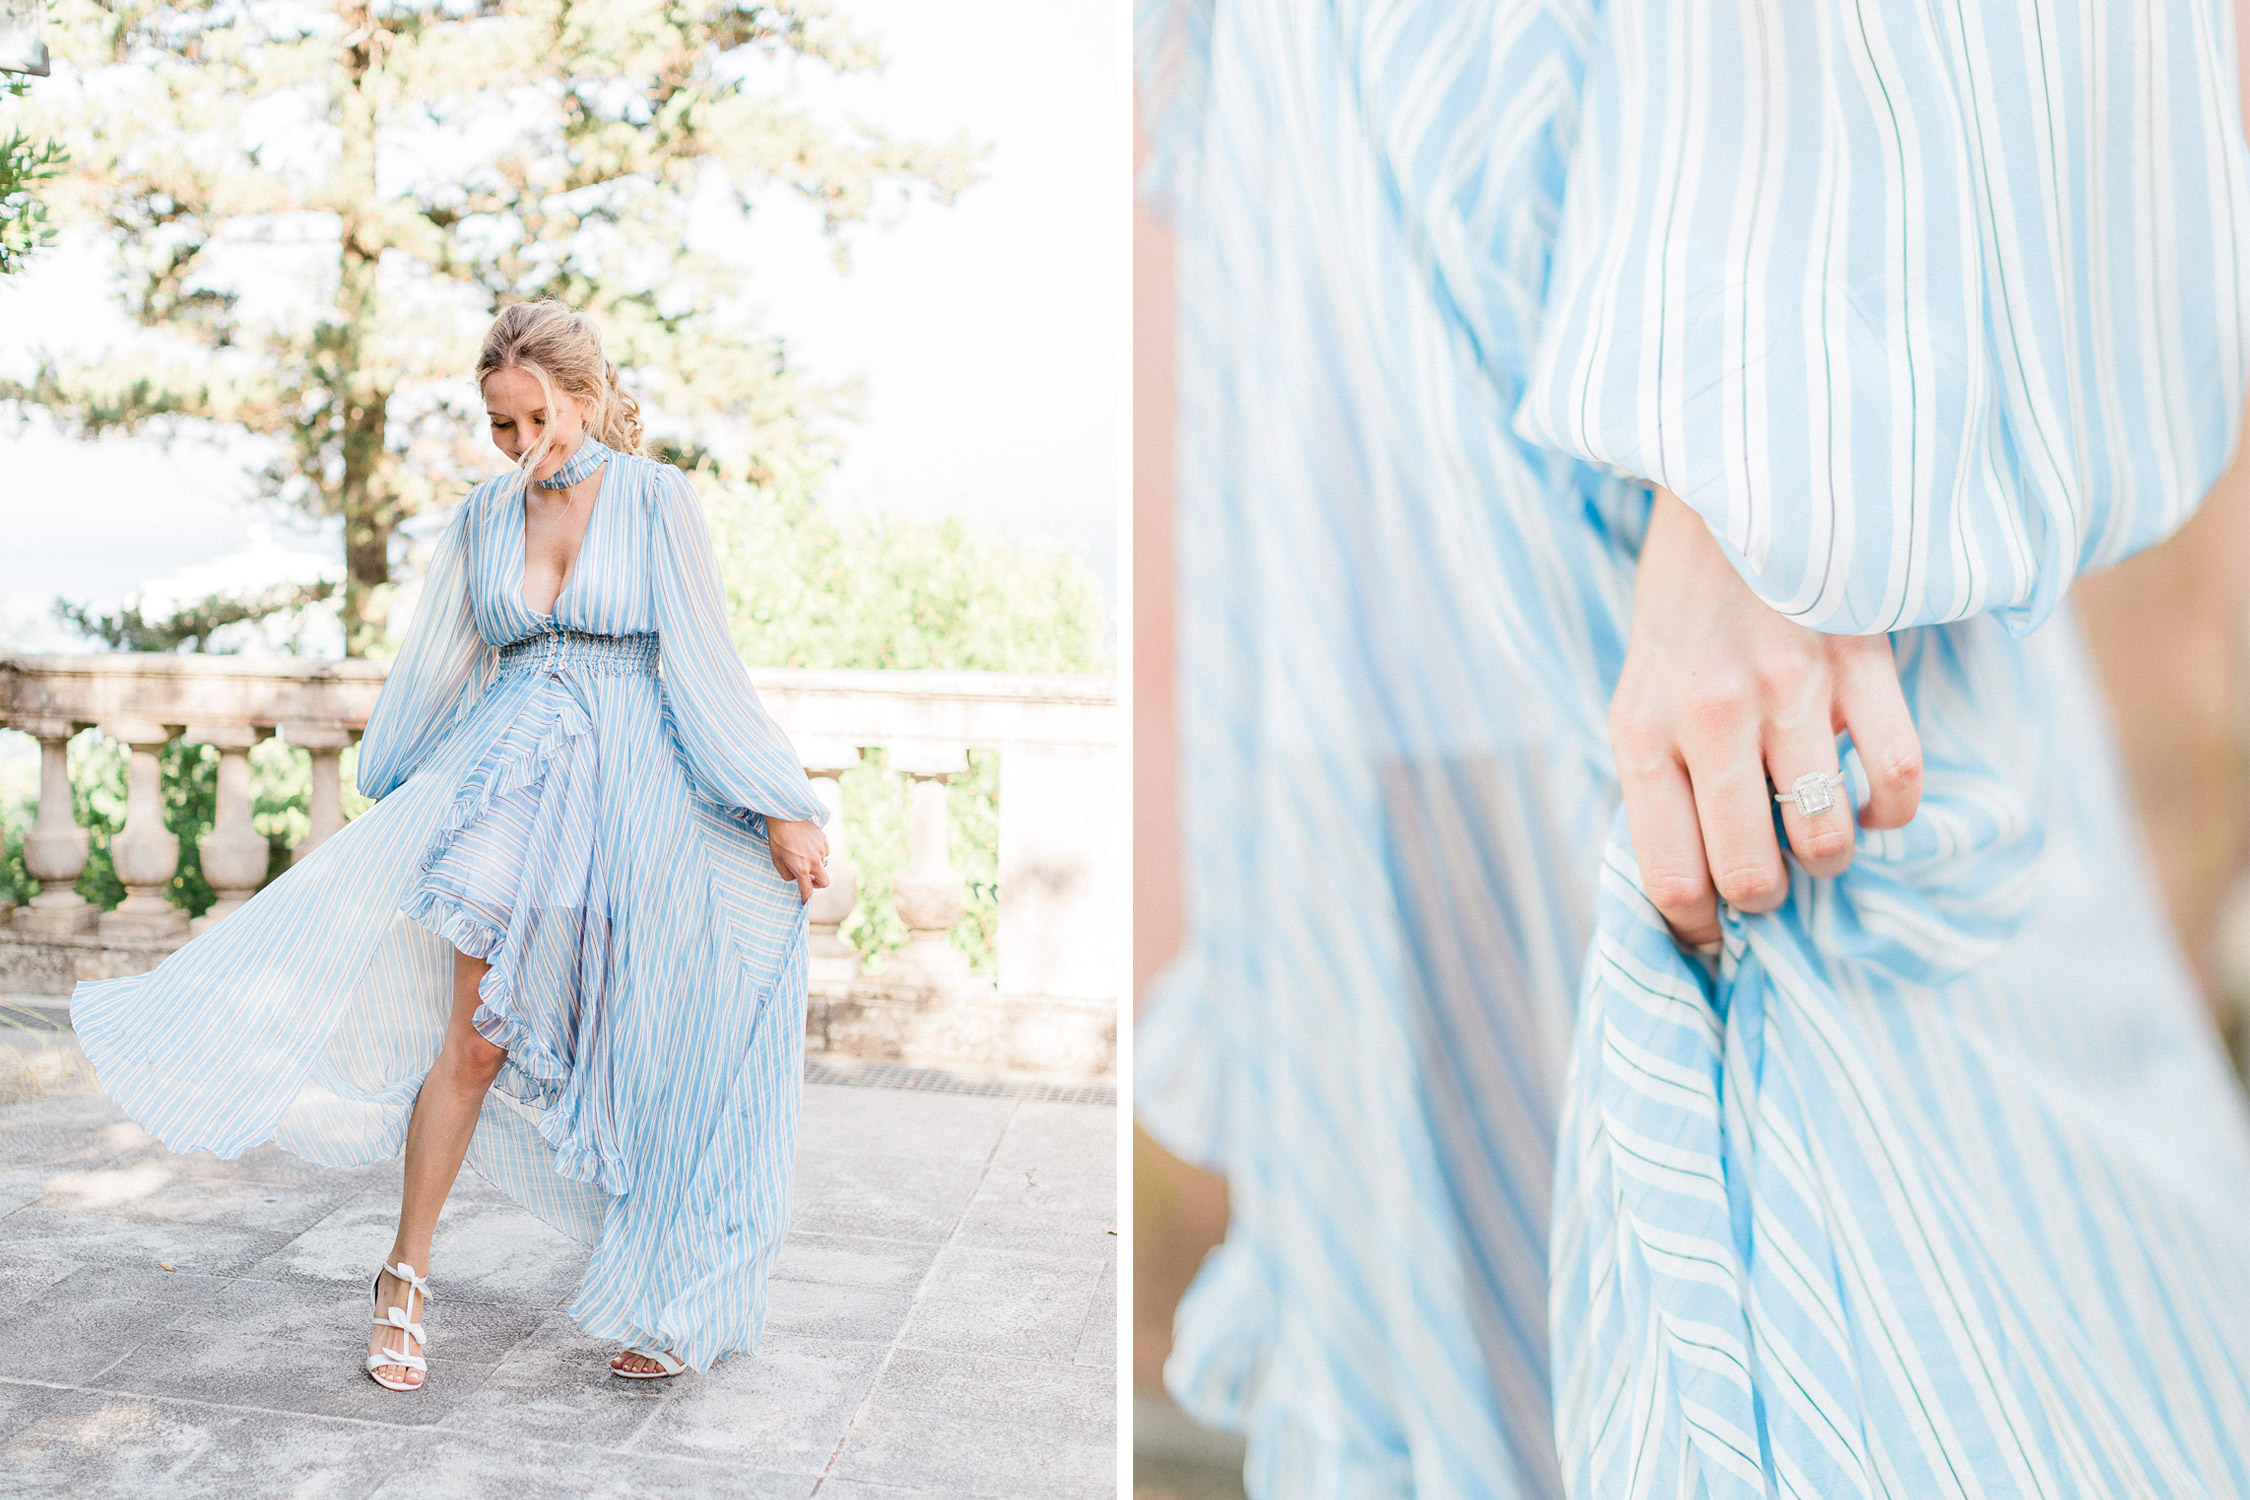 a chic bride to be shoes her engagement ring